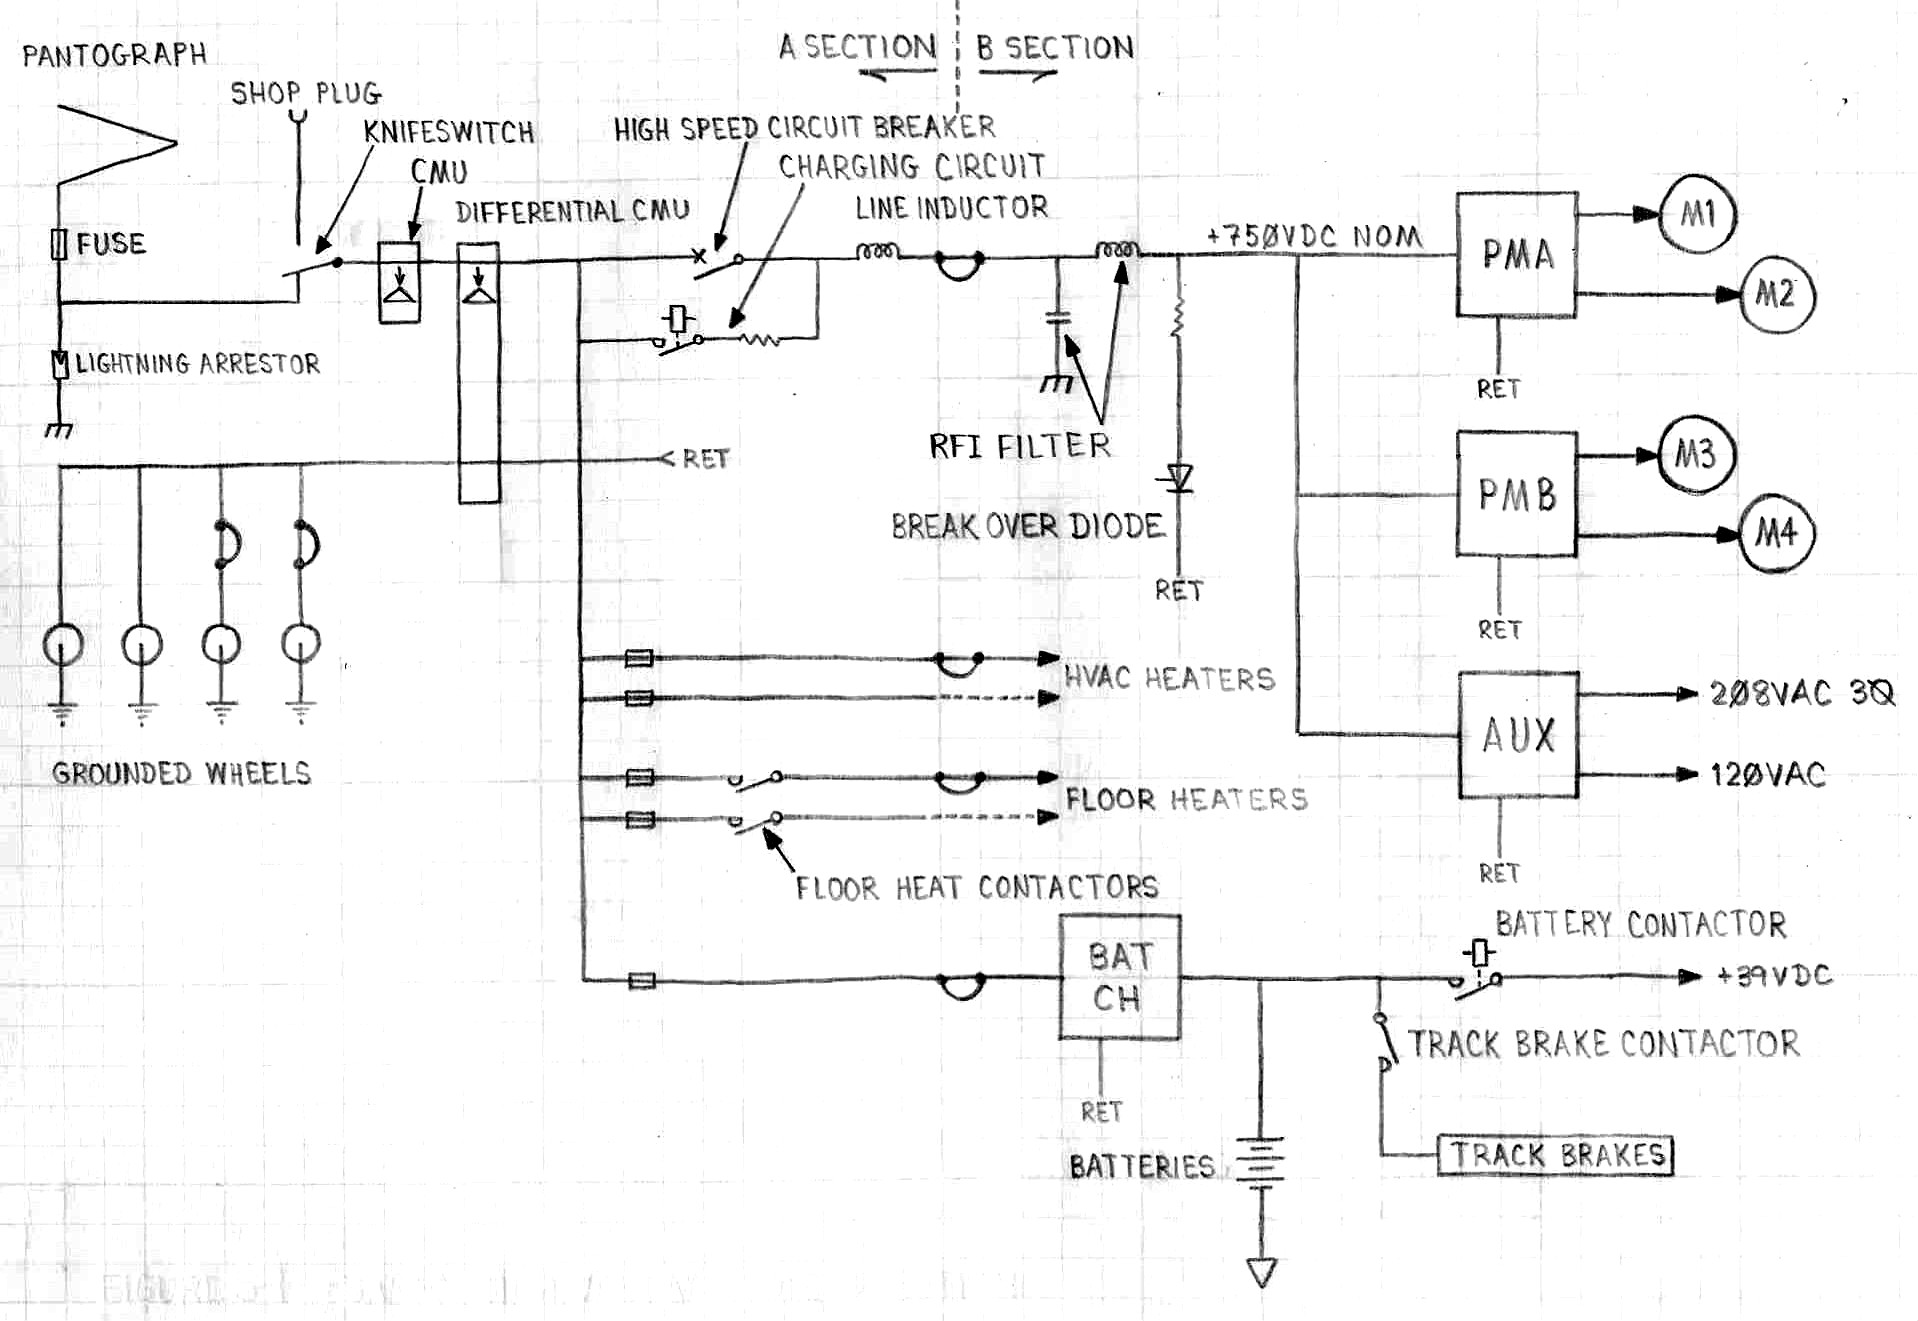 lrv chapter5 Motor Contactor Wiring Diagram